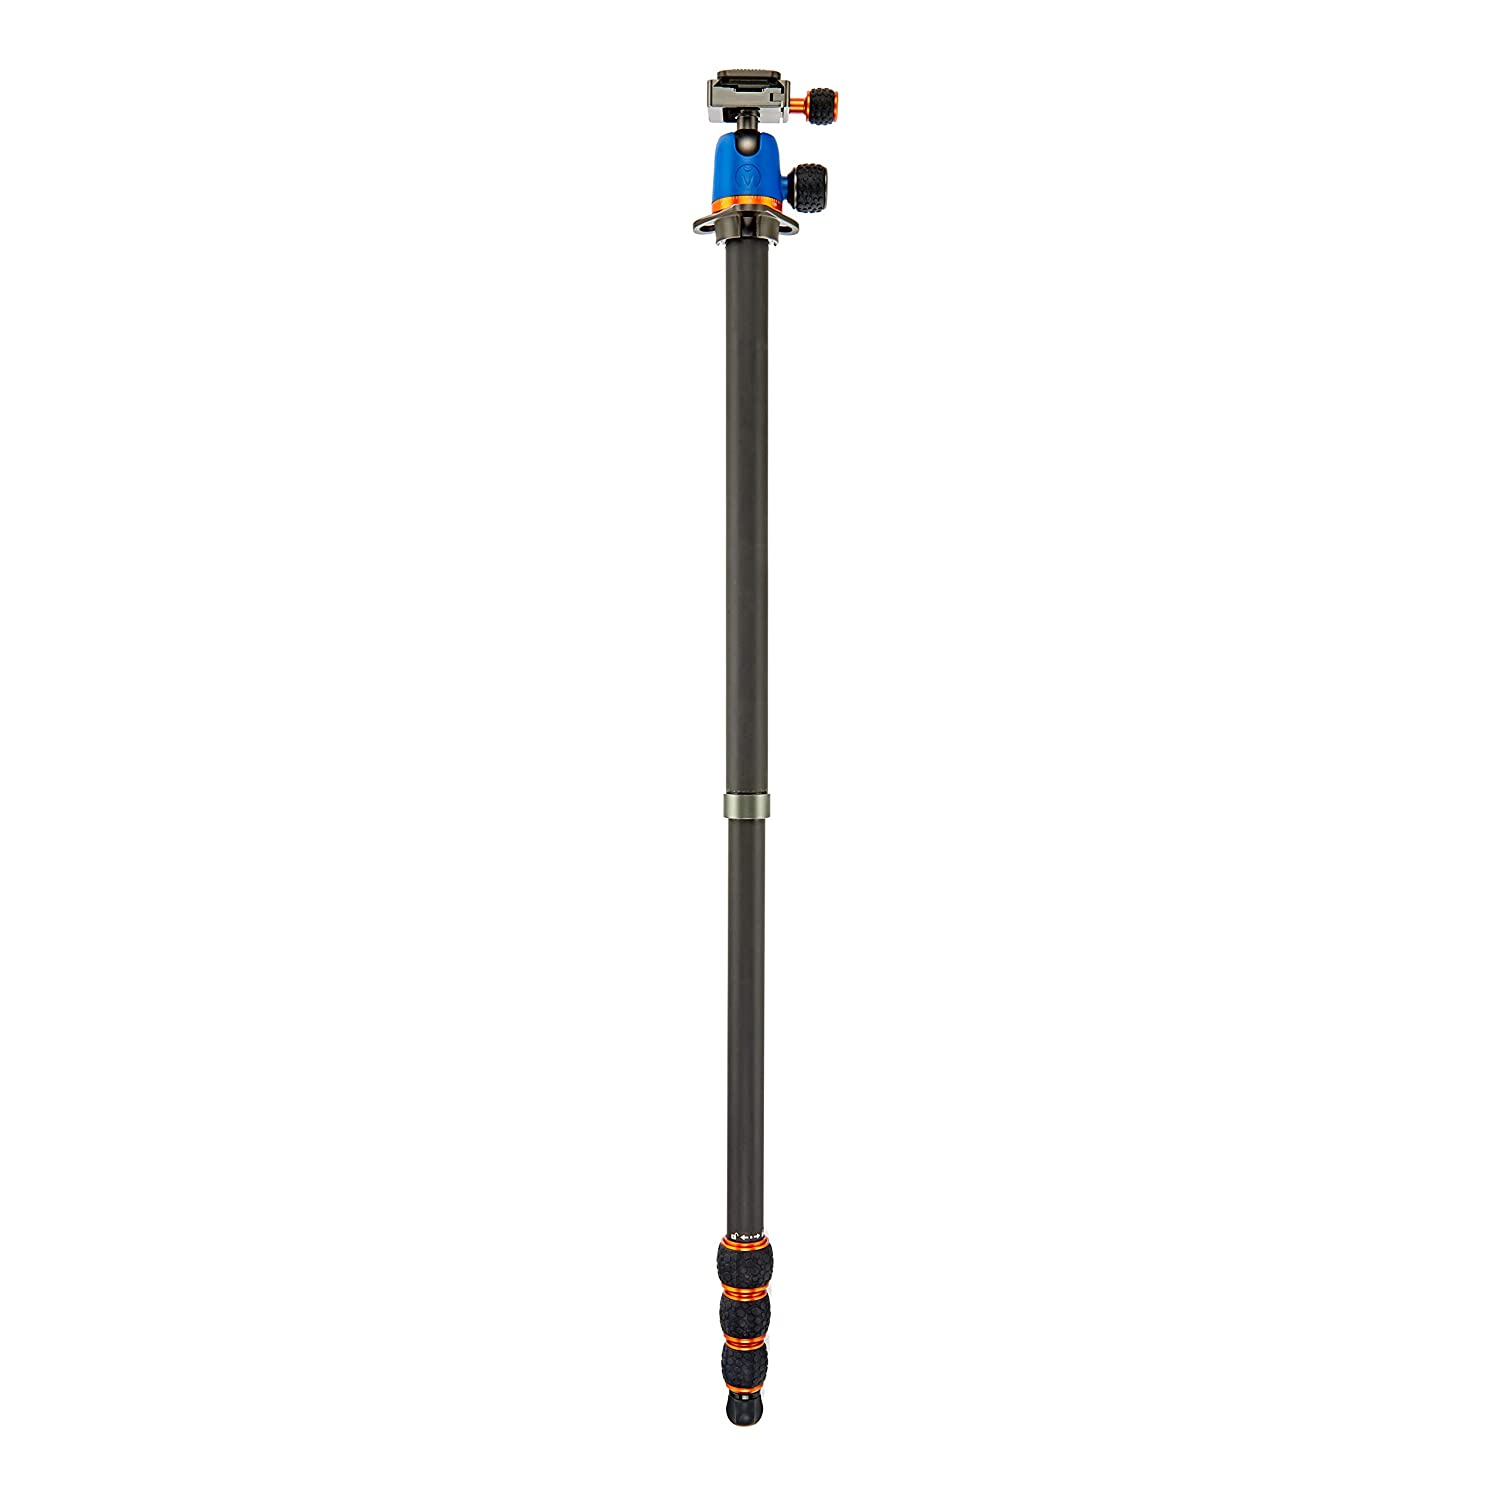 bd7a2711a 3 Legged Thing Punks Billy Tripod System with AirHed: Amazon.co.uk ...